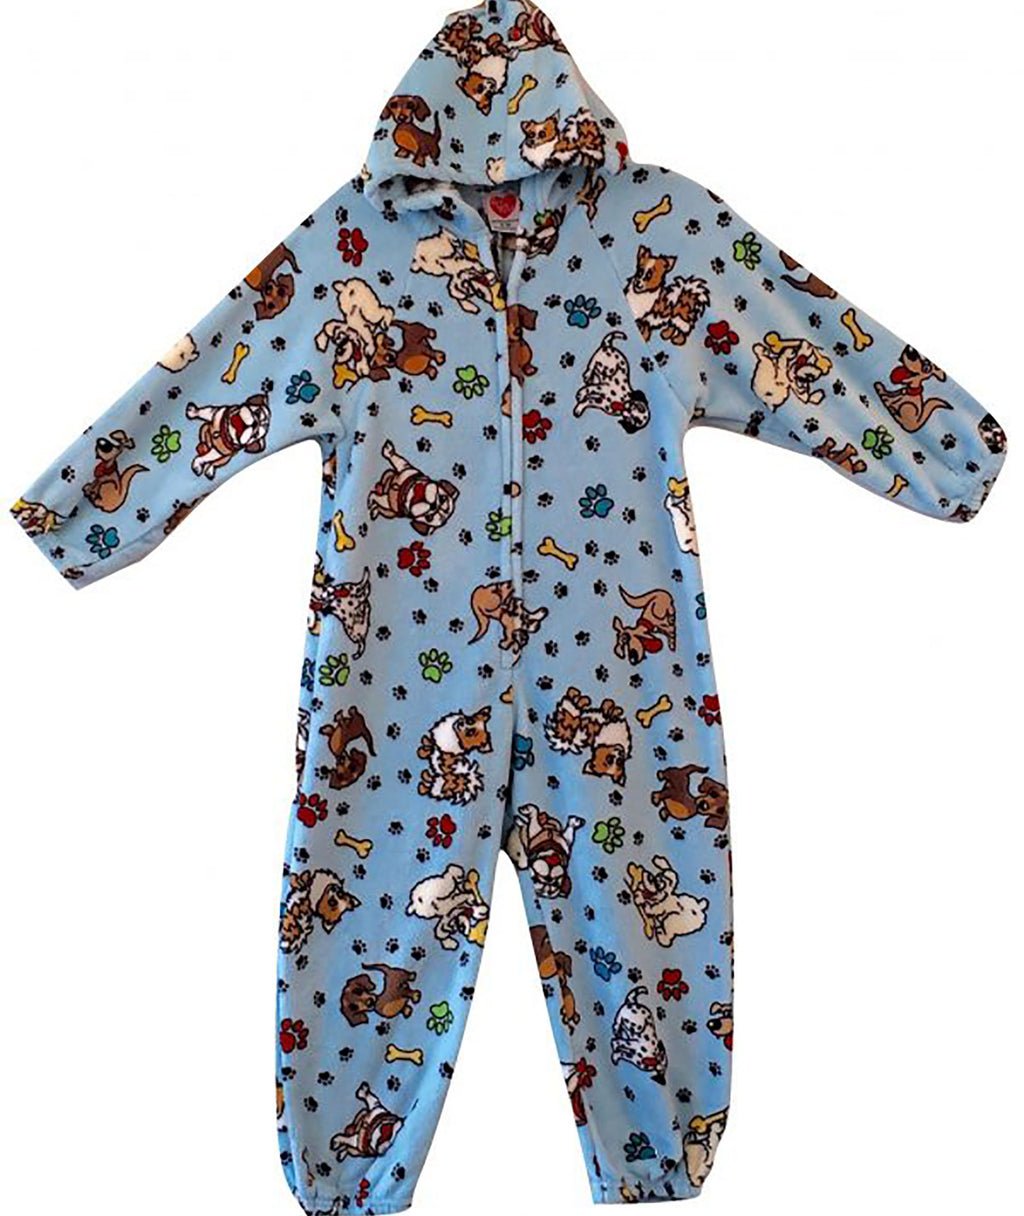 Made with Love and Kisses Dogs' N Paws Plush Jumpsuit